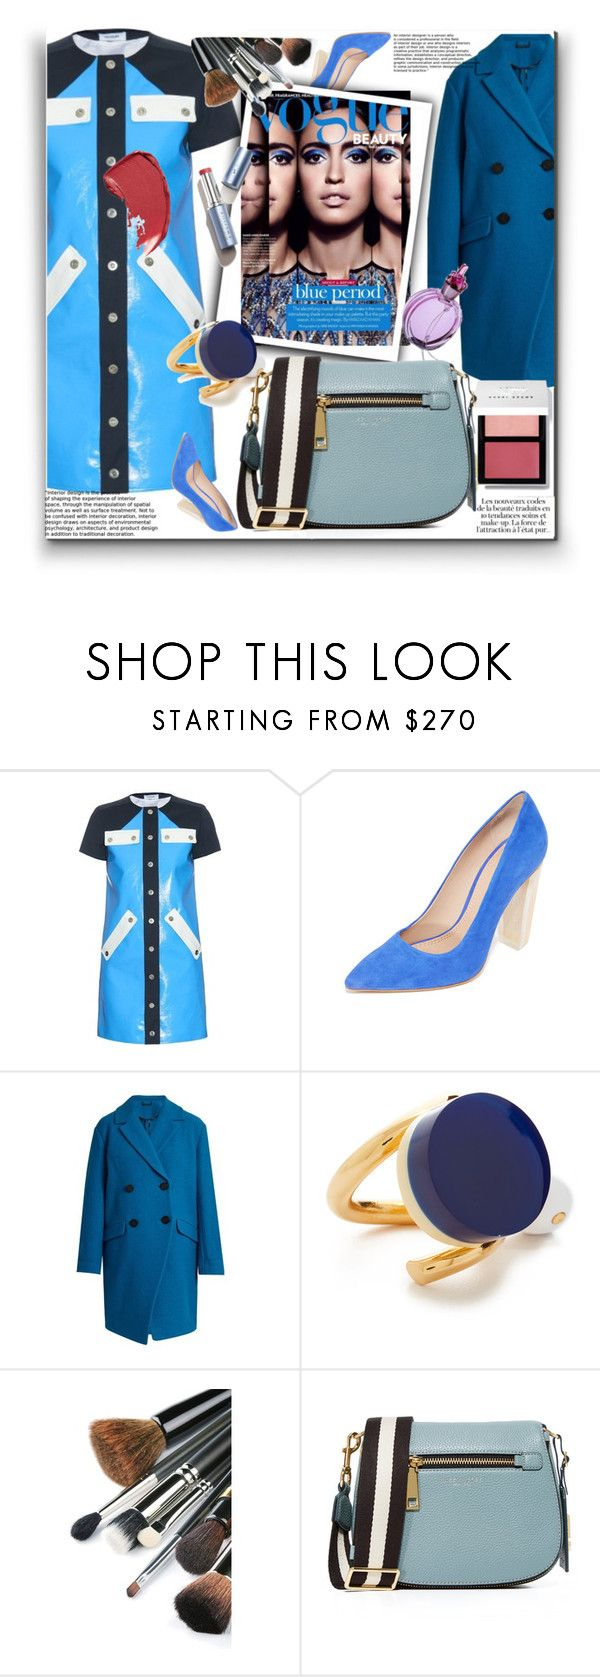 """Fabulous in Button-Through Dress!!"" by stylediva20 ❤ liked on Polyvore featuring Courrèges, Tory Burch, Diane Von Furstenberg, KAROLINA, Marni and Marc Jacobs"